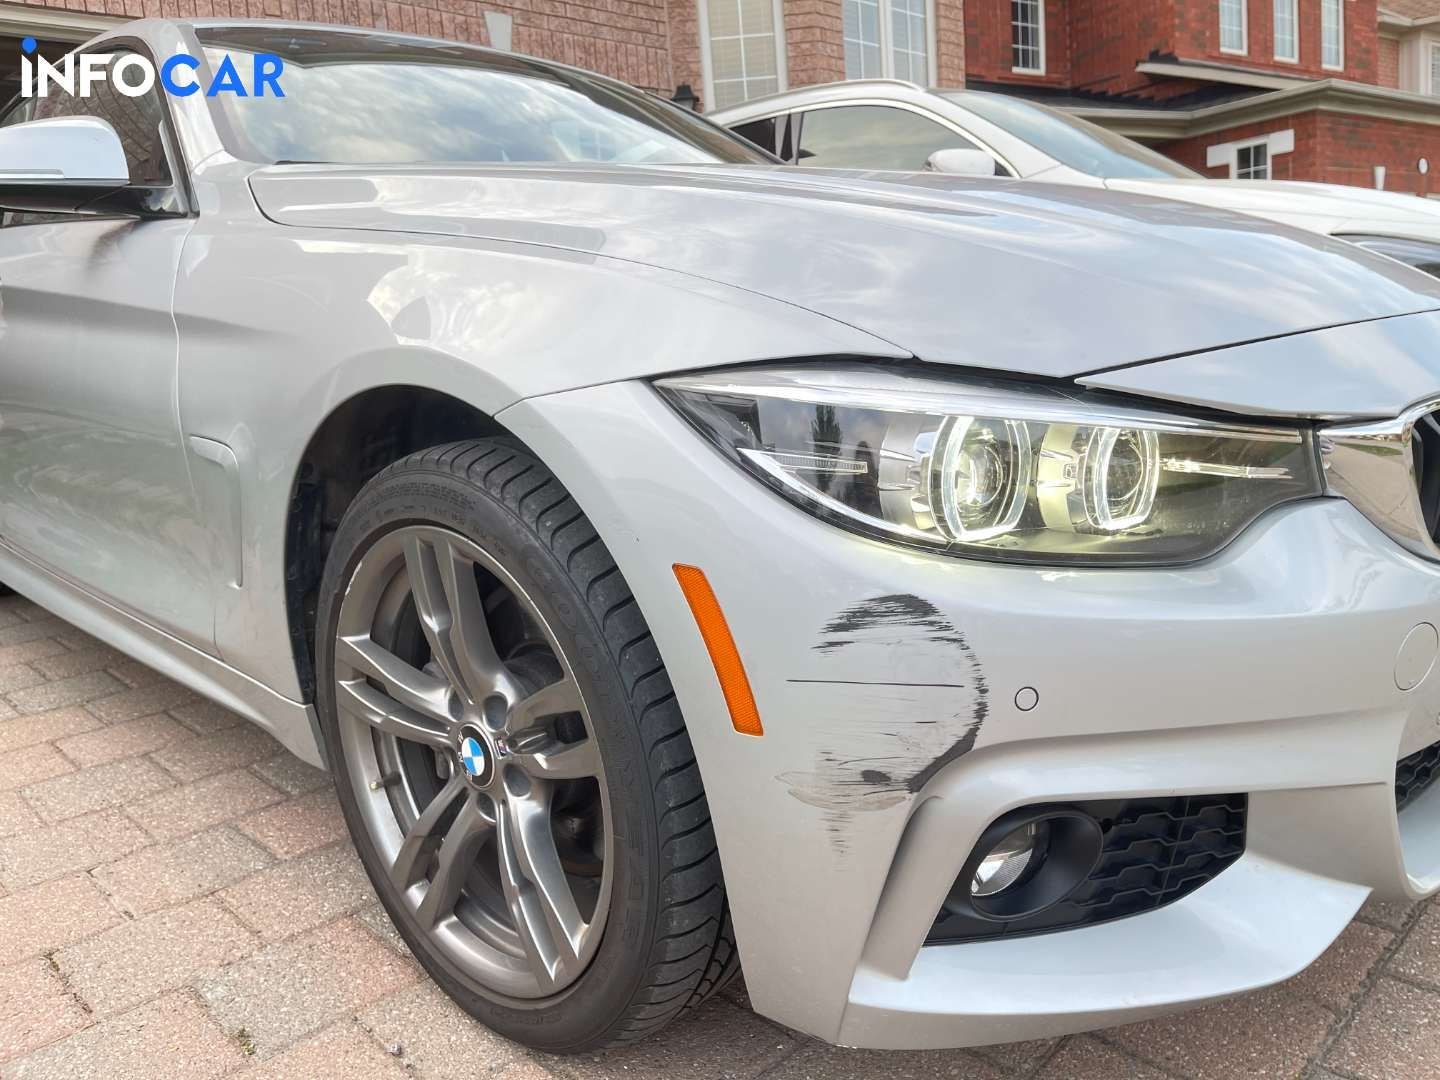 2018 BMW 4-Series Gran Coupe 430i xDrive Grancoupe - INFOCAR - Toronto's Most Comprehensive New and Used Auto Trading Platform